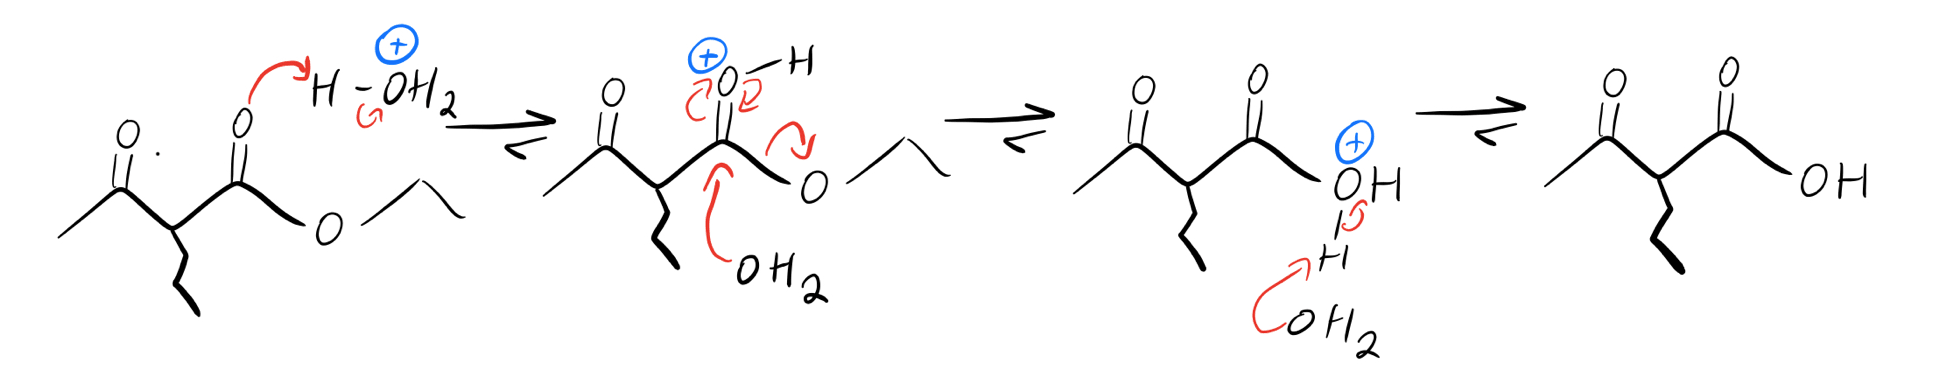 Acid-catalyzed-ester-hydrolysis